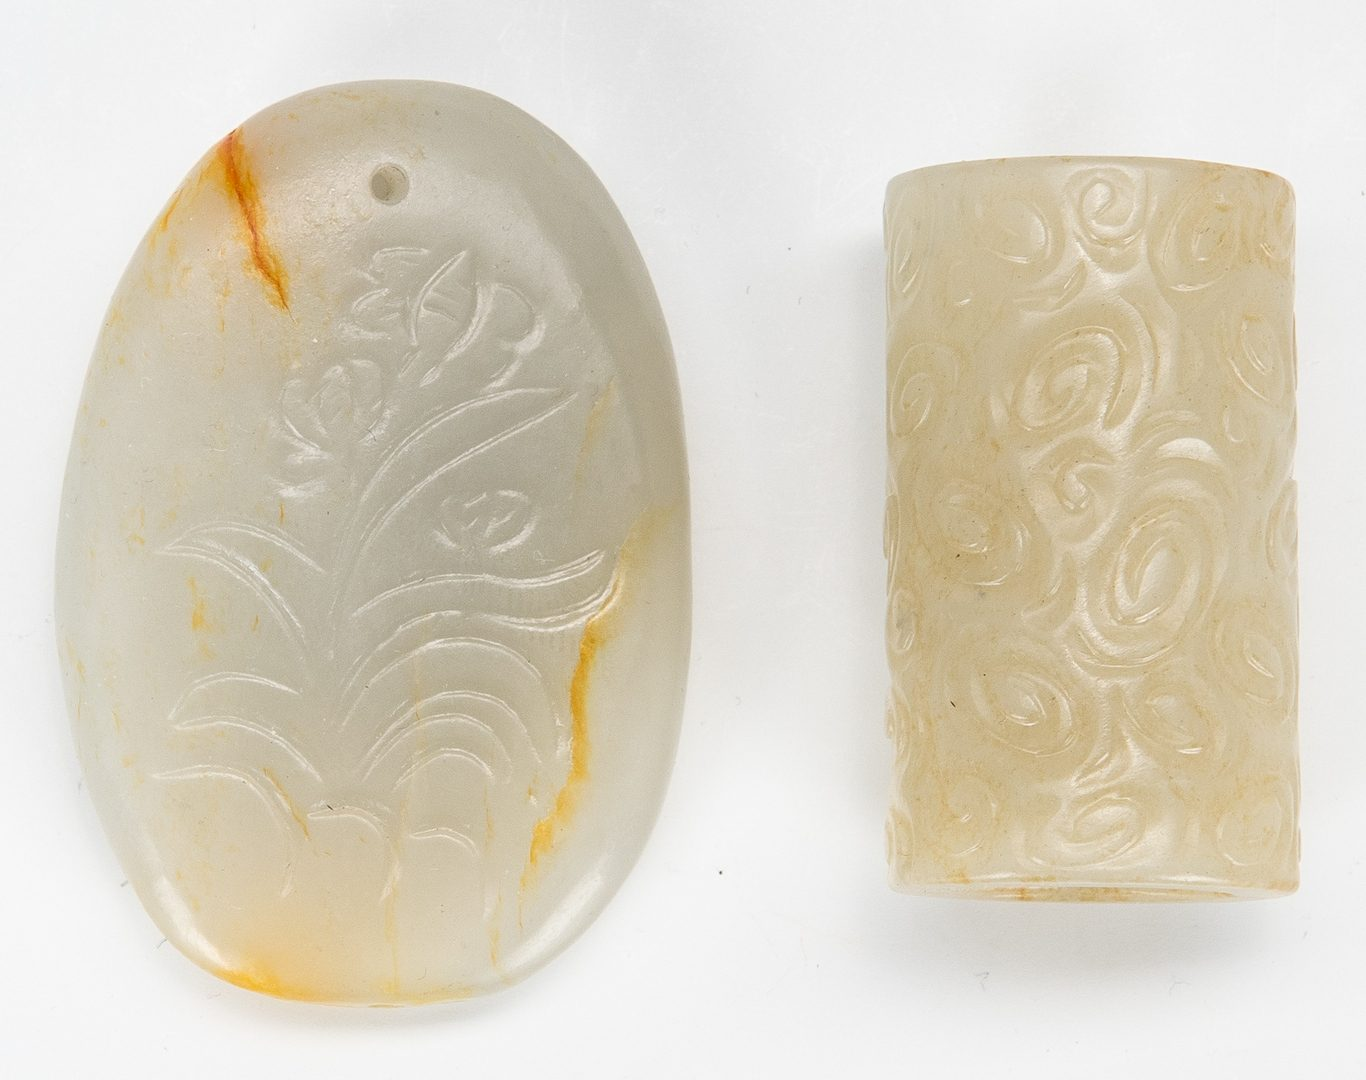 Lot 453: 11 Chinese Carved Jade items